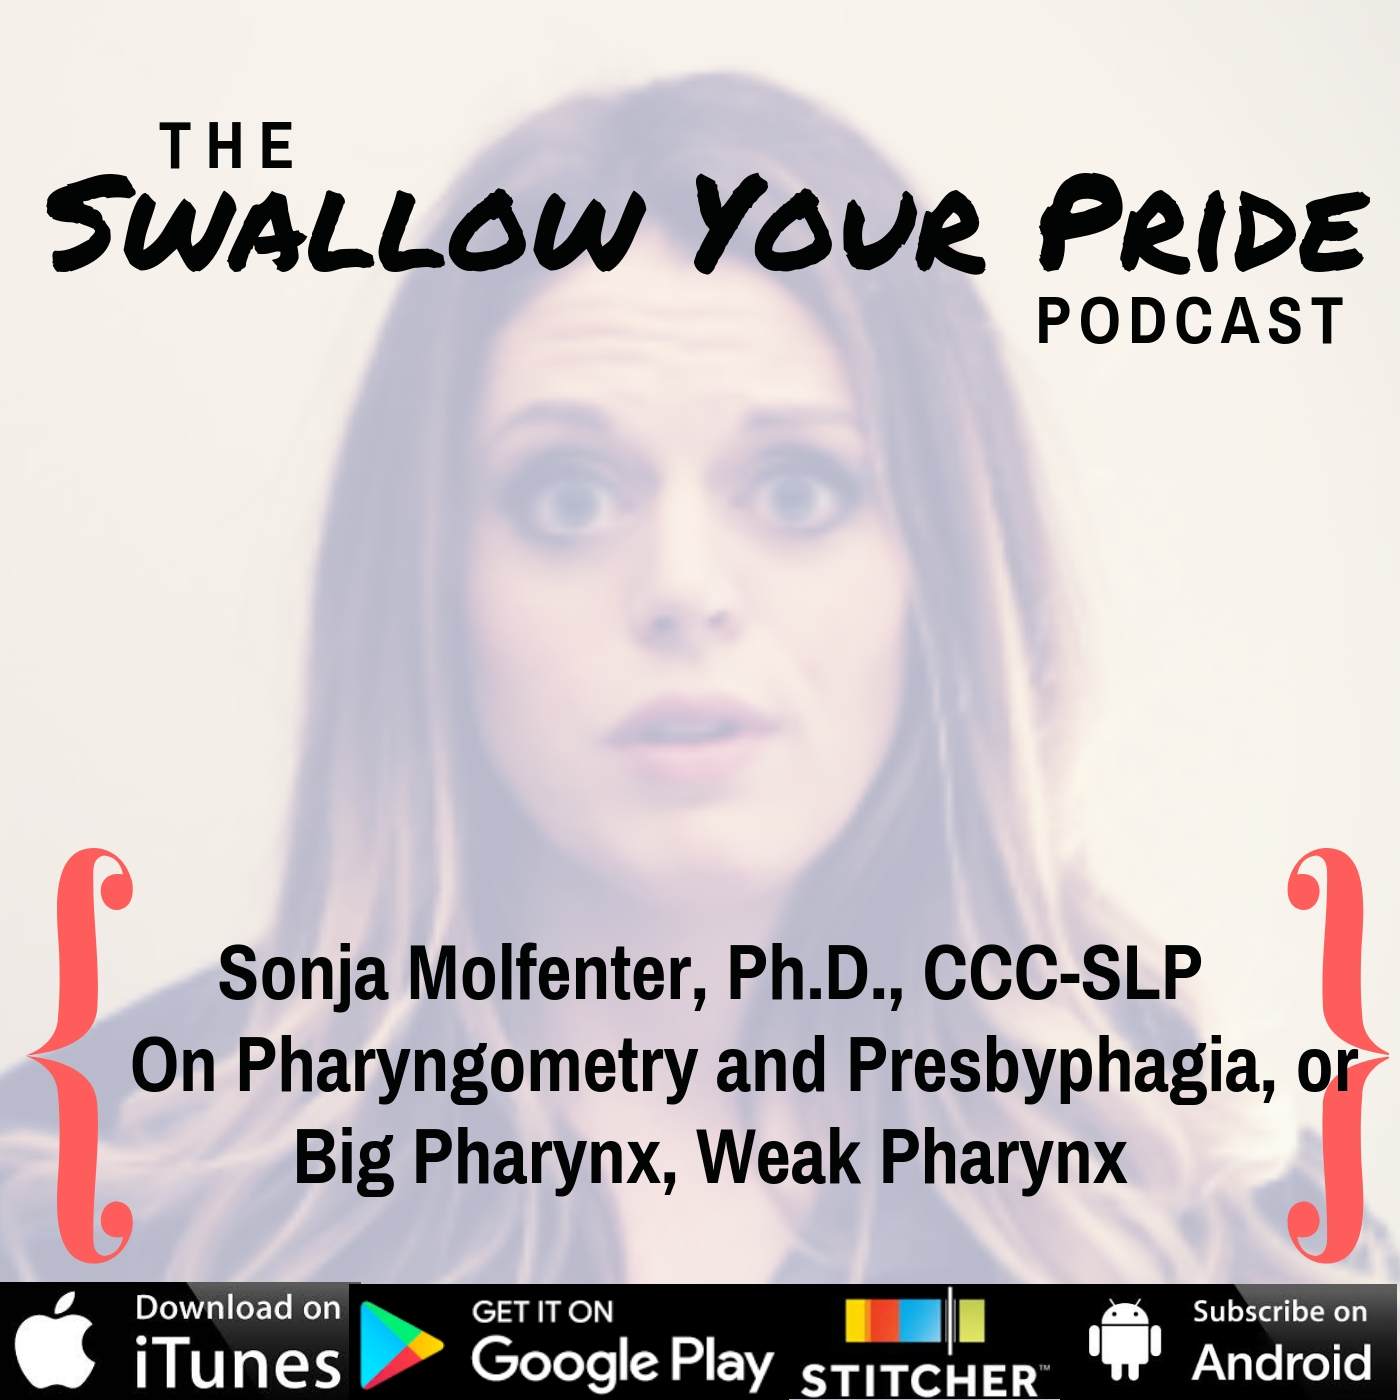 069 – Sonja Molfenter, Ph.D., CCC-SLP – On Pharyngometry and Presbyphagia, Big Pharynx, Weak Pharynx